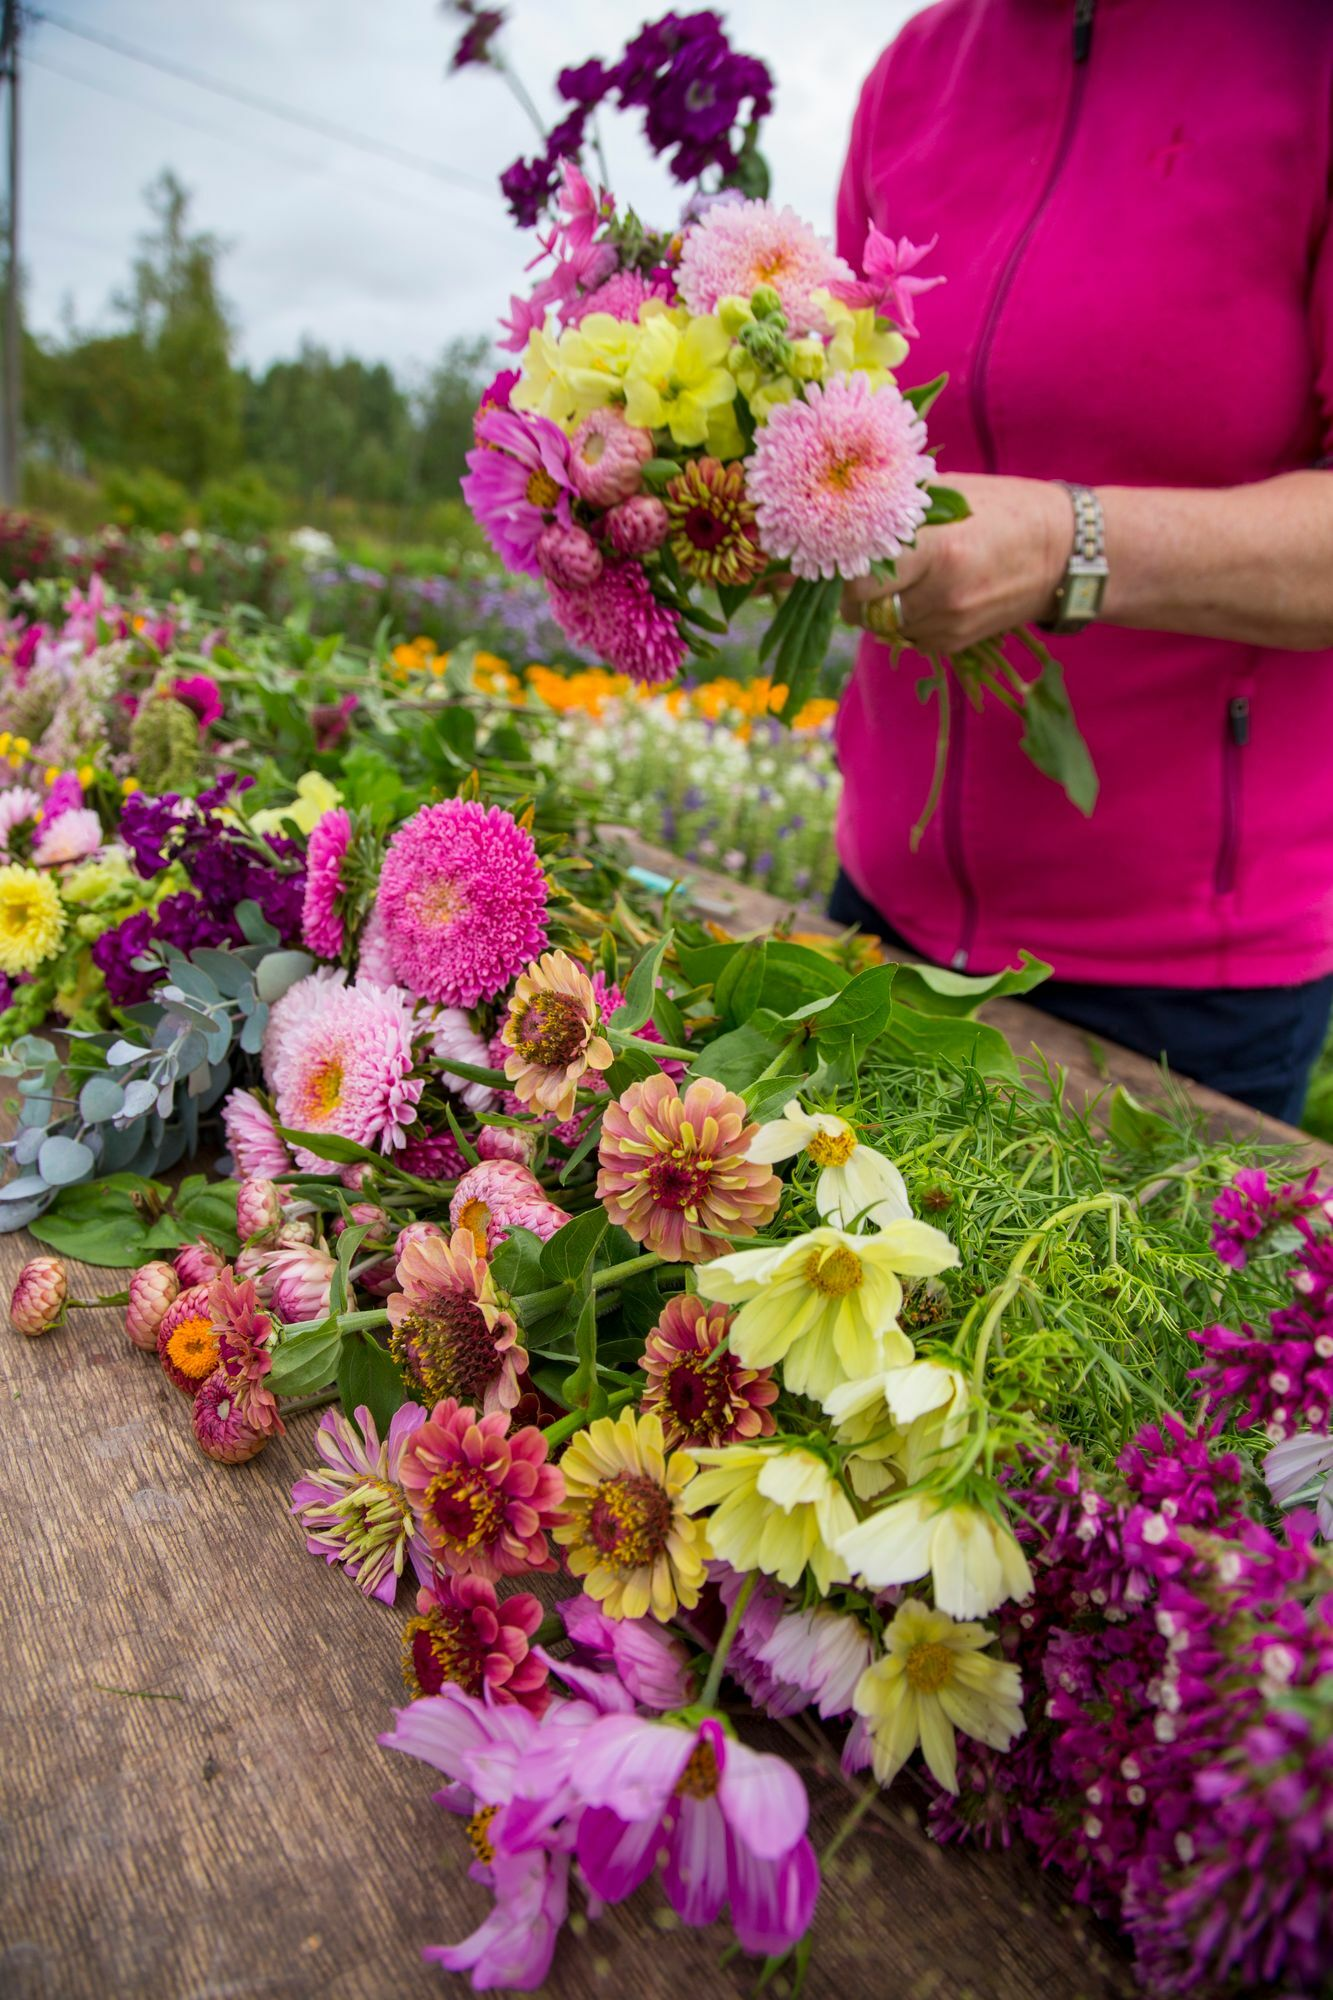 Bouquet flowers should be picked as soon as the morning, when the liquid tension of the plants is at its best.